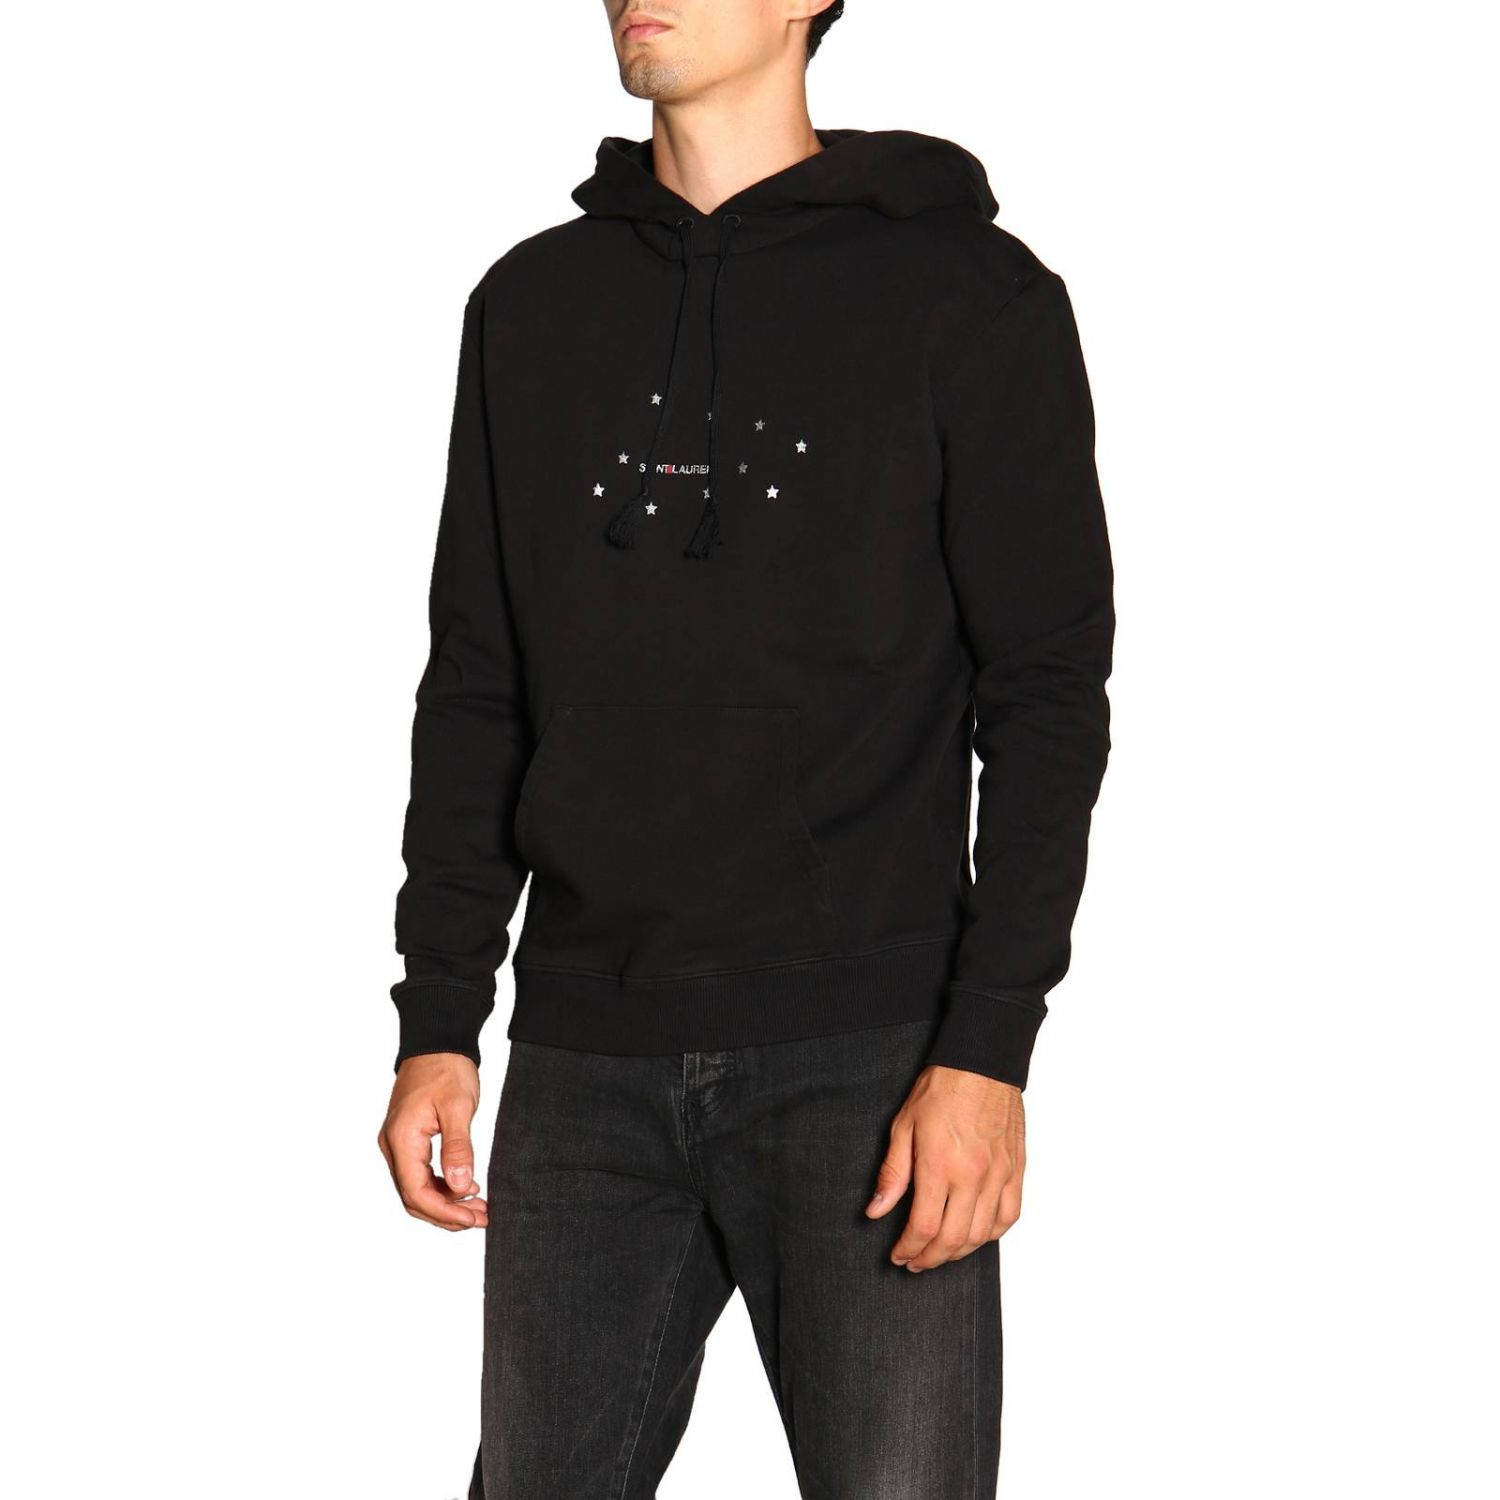 Sweater men Saint Laurent black 4